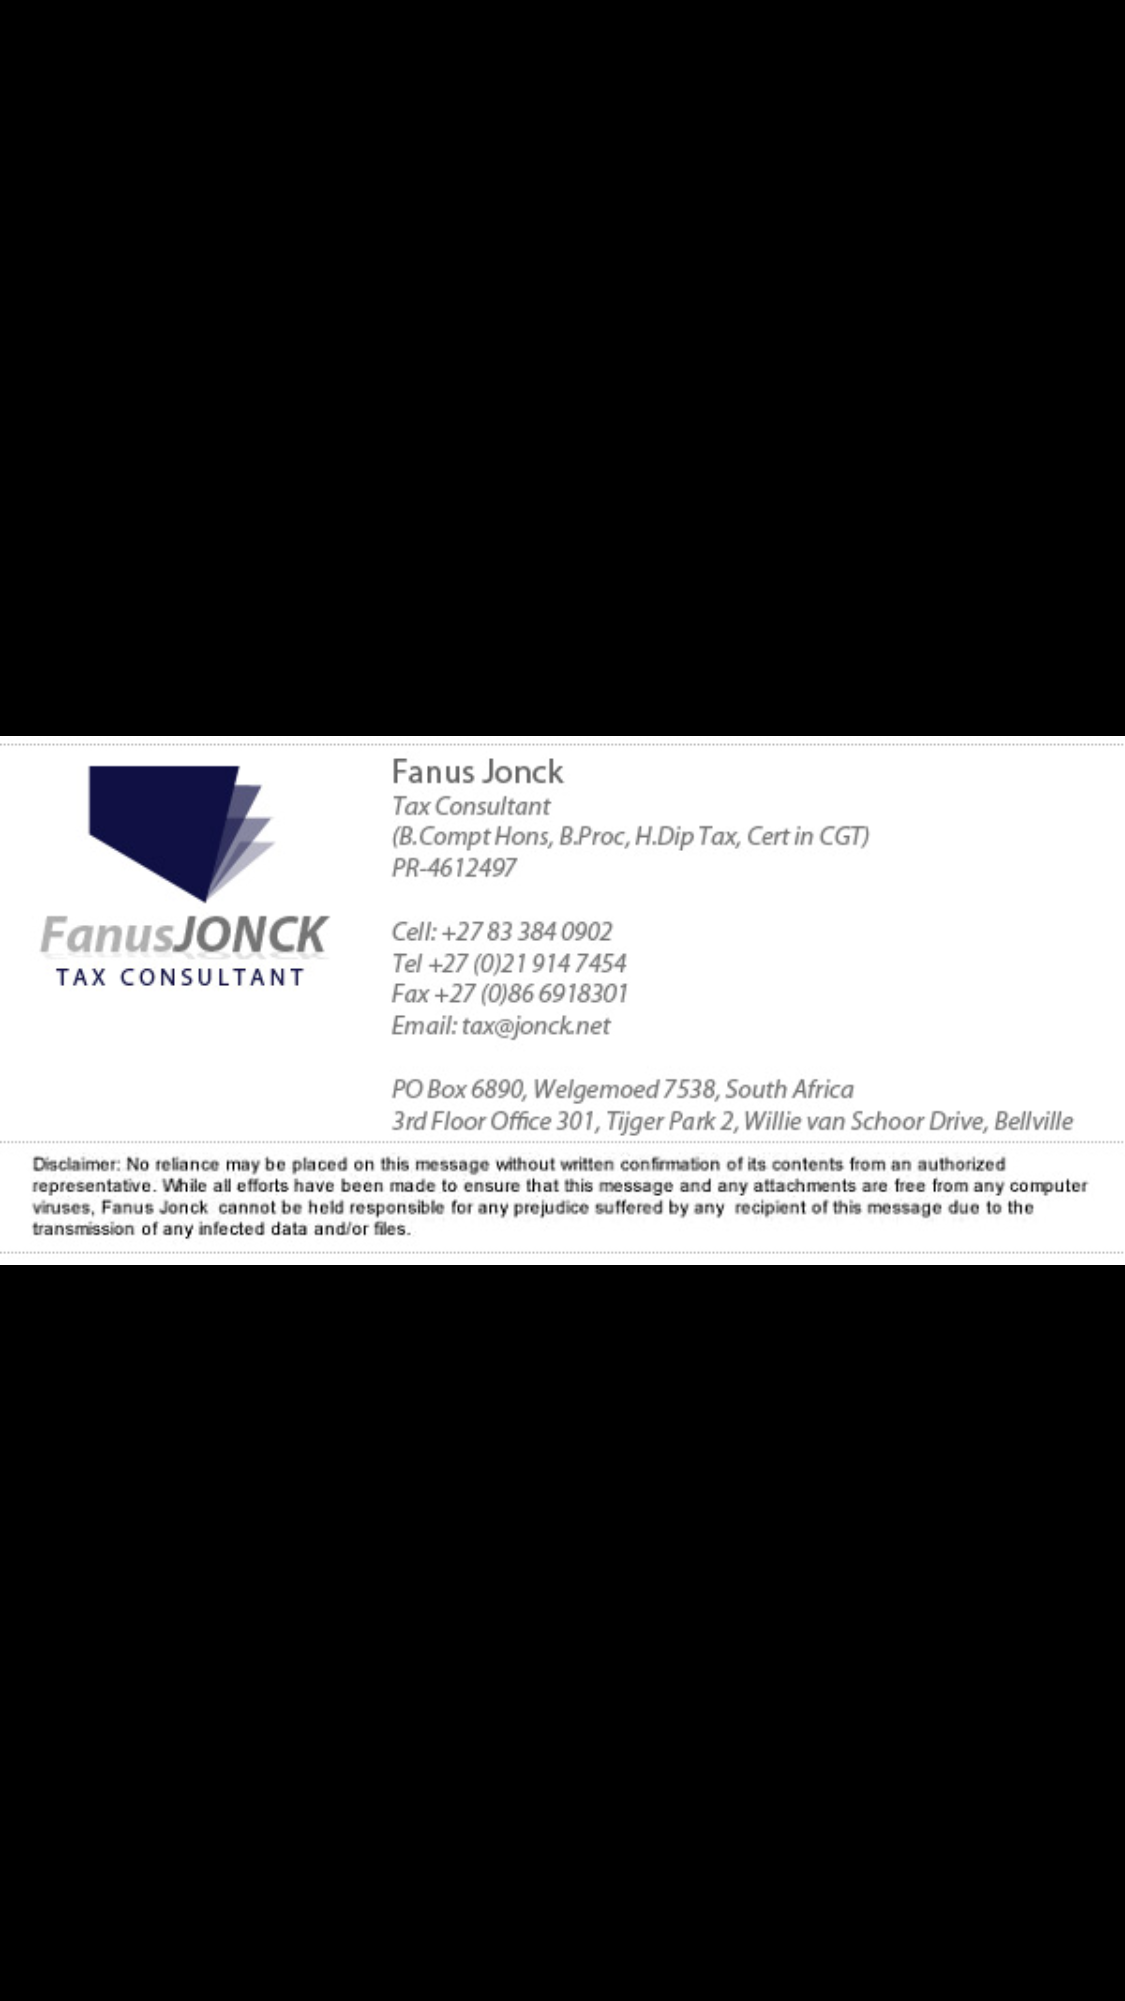 Fanus Jonck is exceptionally knowledgable when it comes to dealing with Foreign property transactions ...  contact him with any queries ... Tax@jonck.net 021 9147454